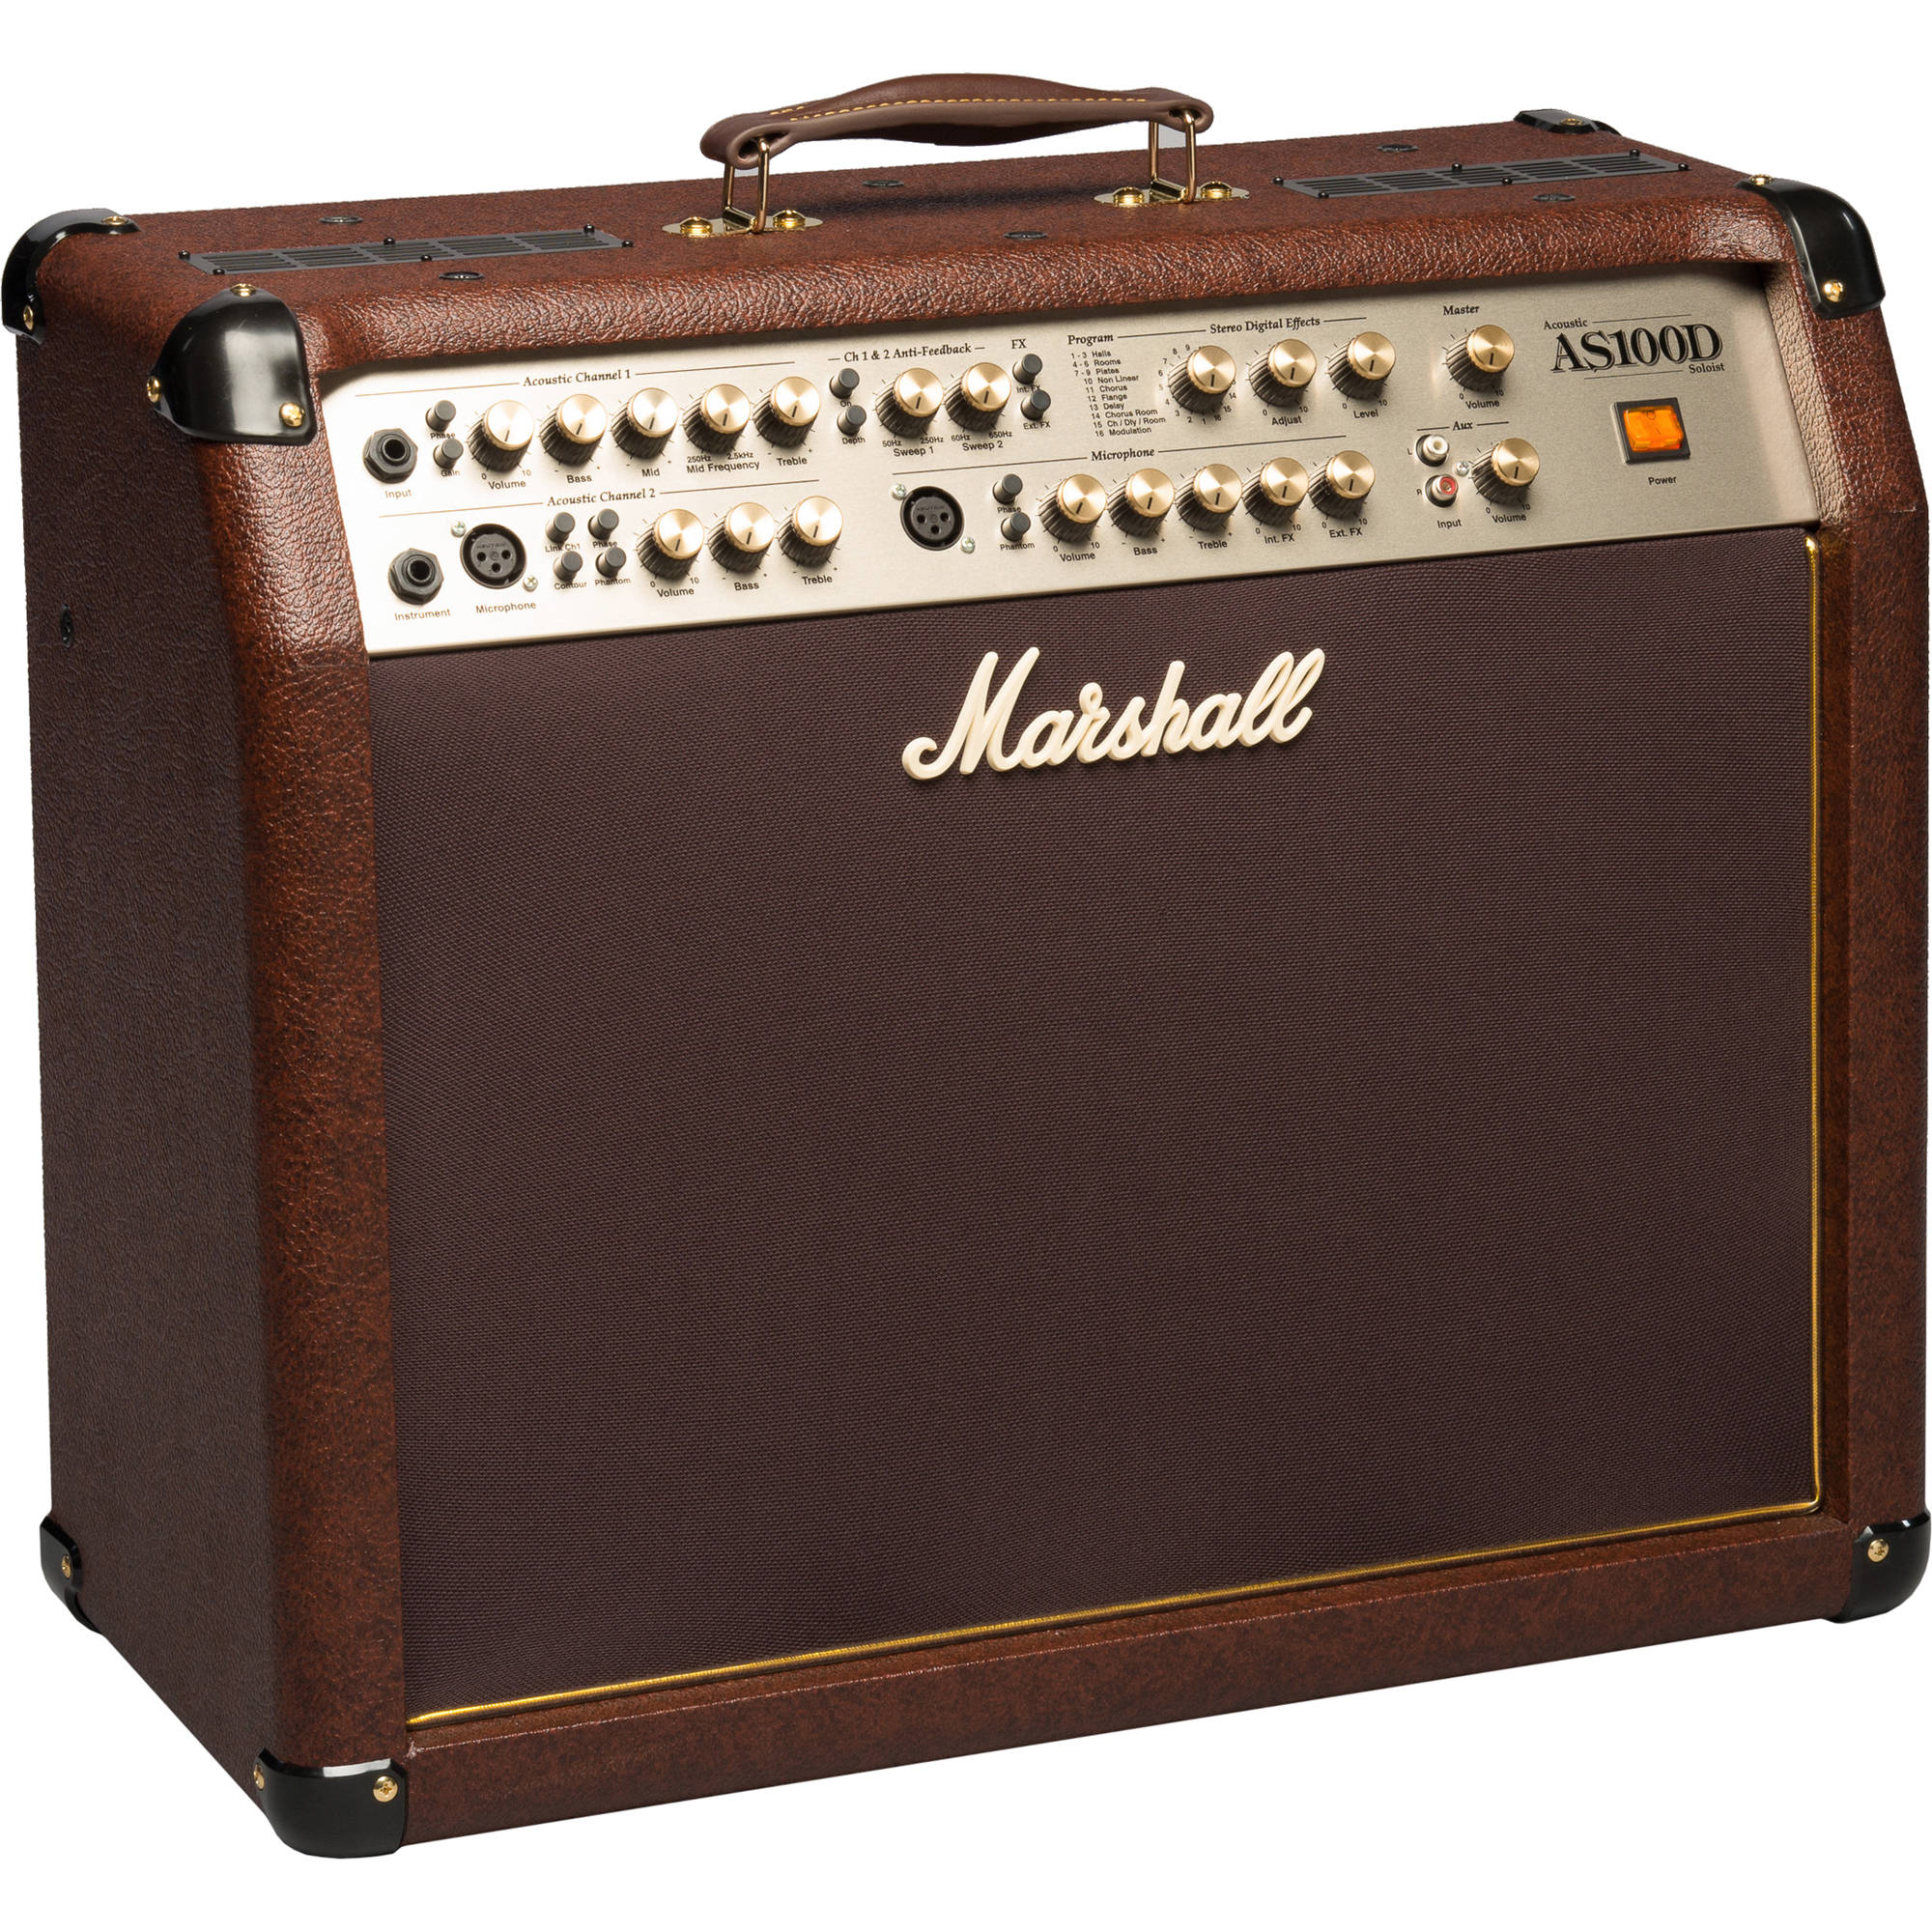 Marshall Amplification As100d 100w 4 Channel 2x8 Acoustic Rms Amplifier Circuit Guitar Combo With Digital Effects